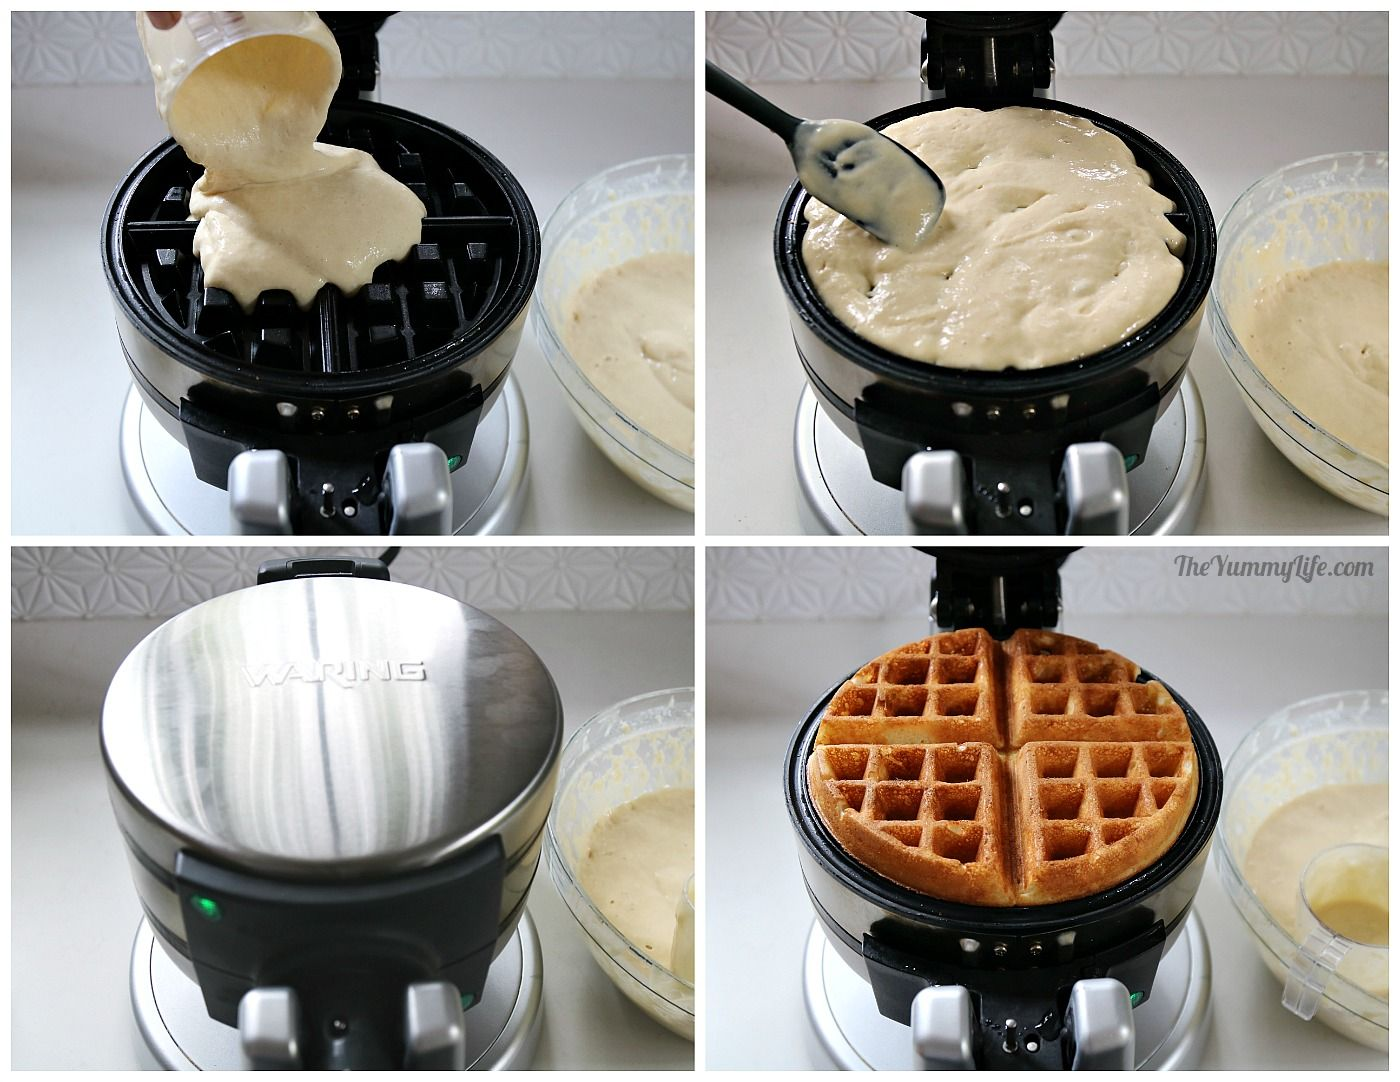 4collage_cookwaffles_resizetm.jpg